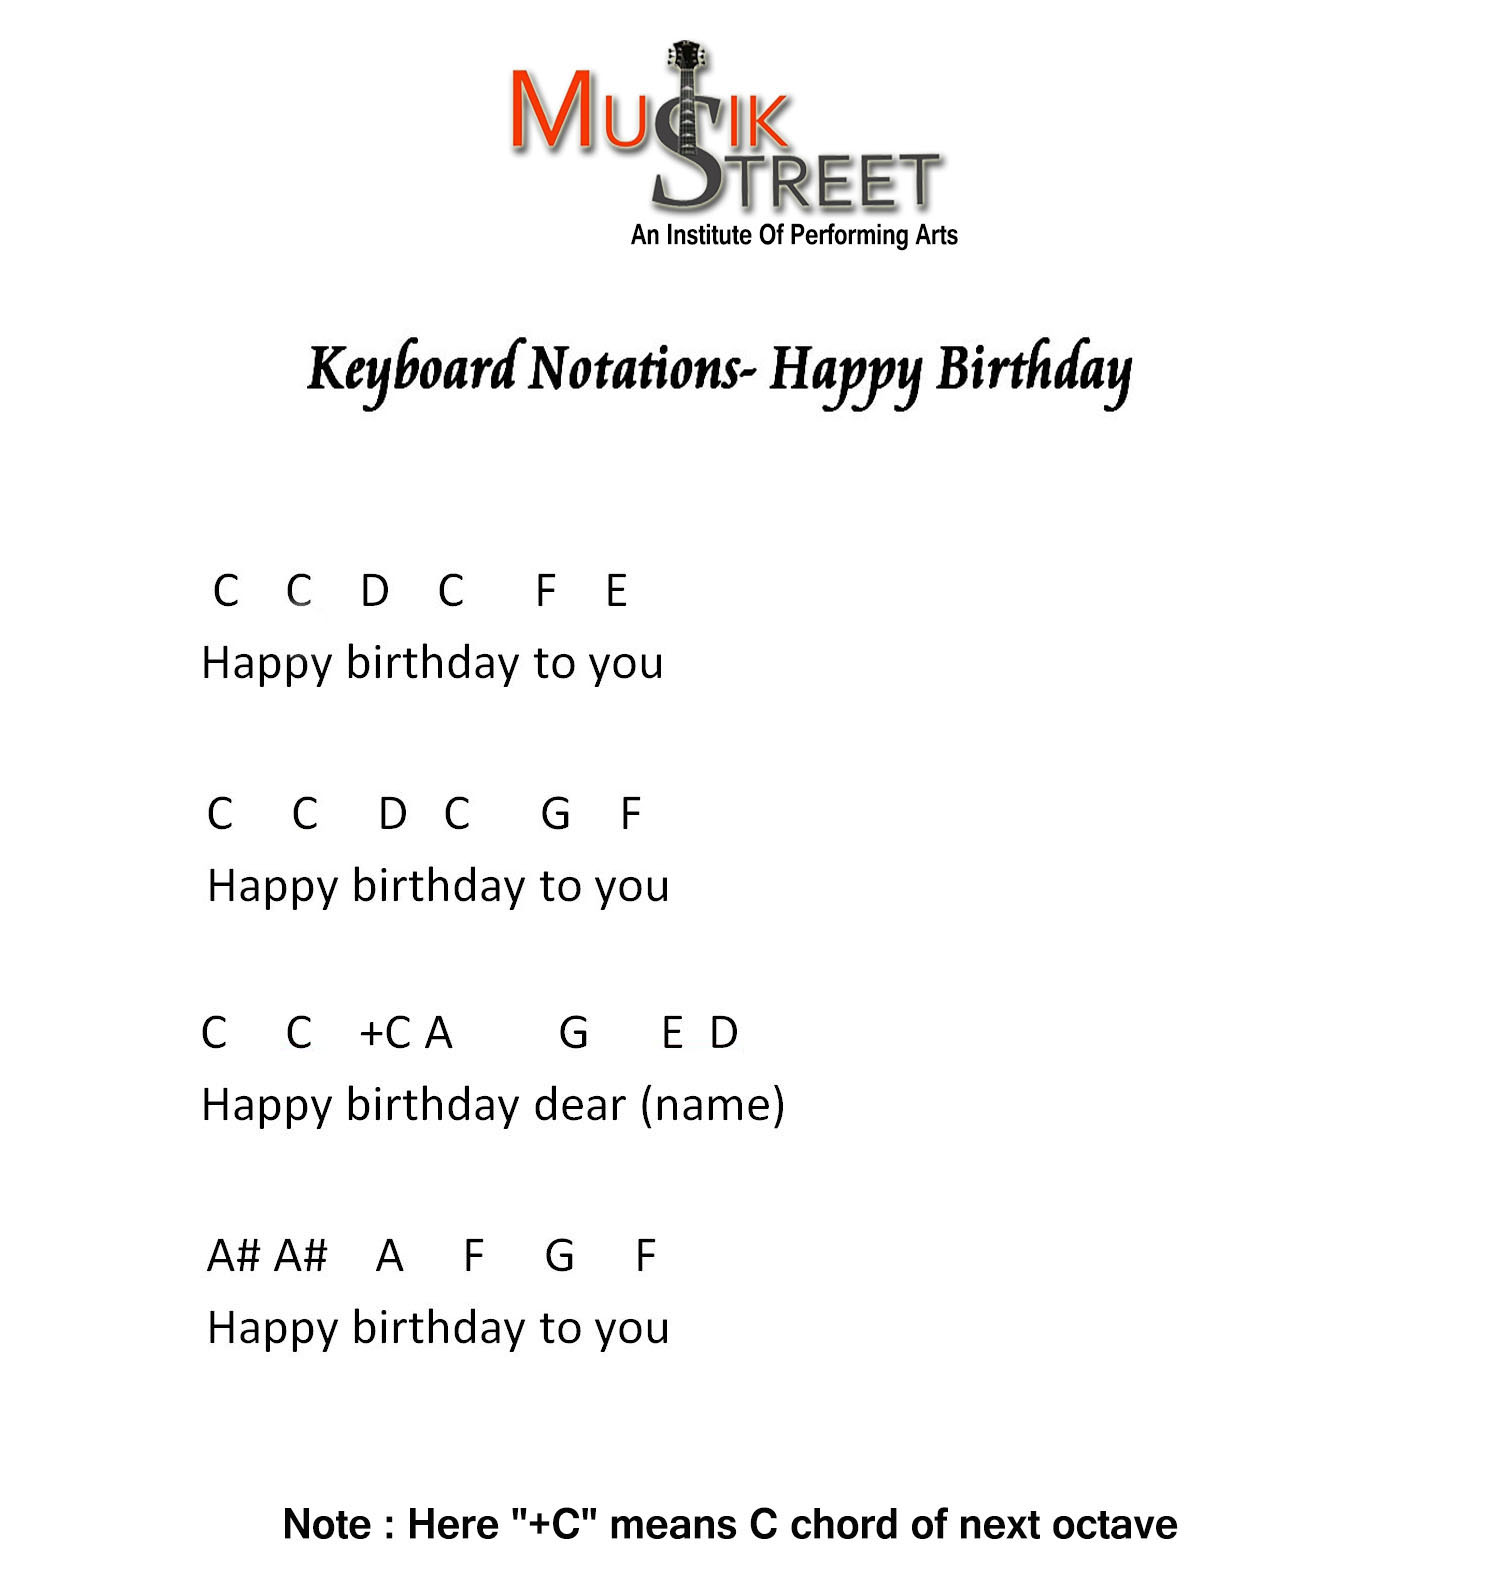 happy birthday tune on keyboard ; happy-birthday-organ-chords-keyboard-notes-of-happy-birthday-5679b697120bf486e04175a860c40892